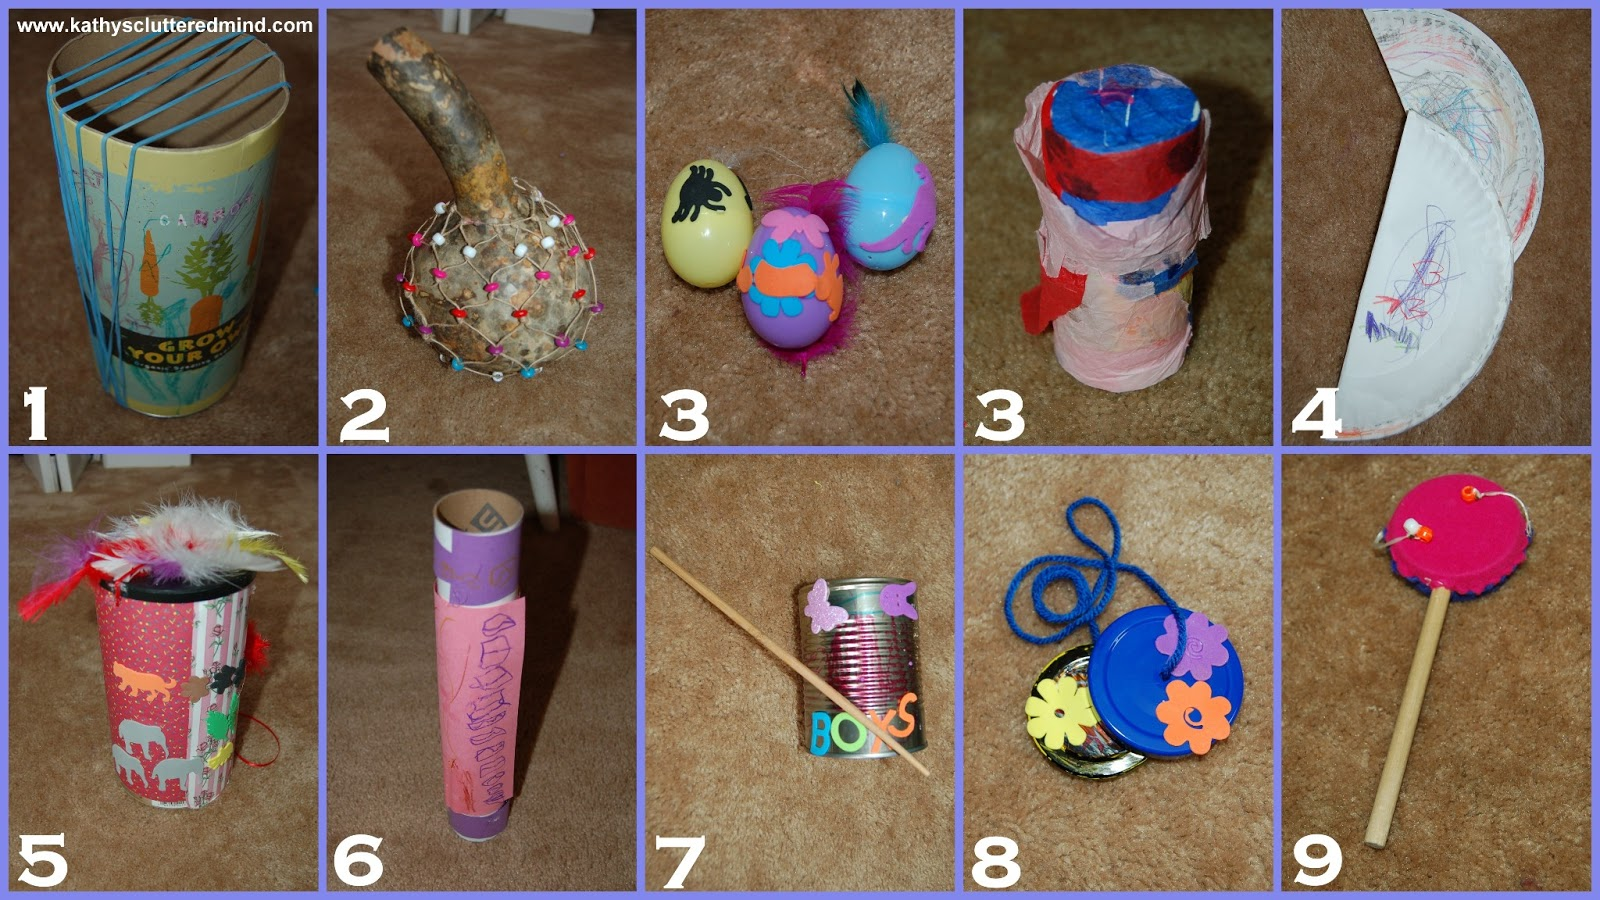 Kathys Cluttered Mind: 10 Easy/Inexpensive Instruments To Make With